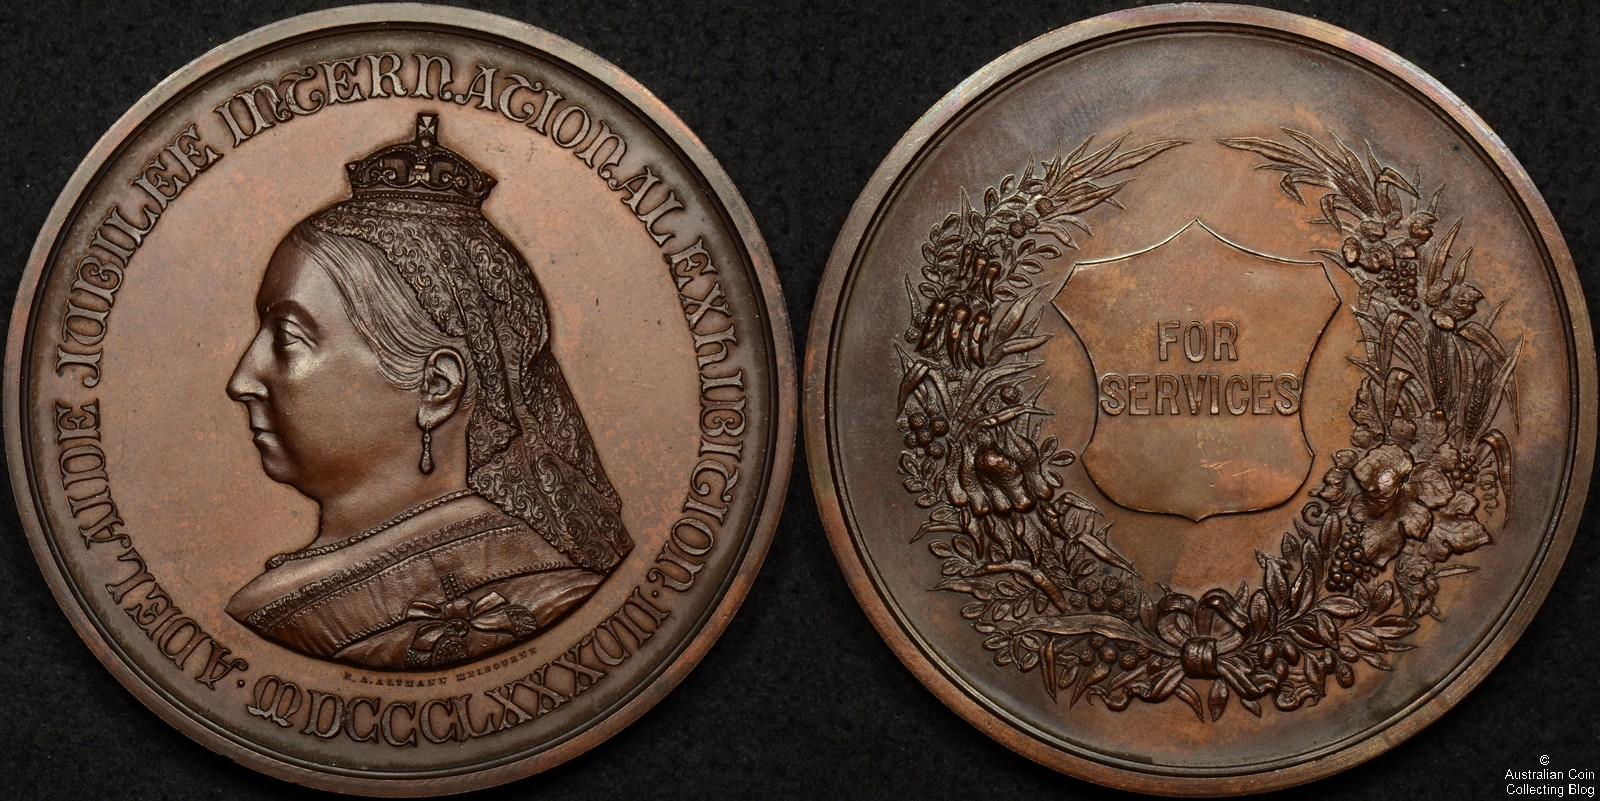 1887 Adelaide Jubilee International Exhibition Medal For Services